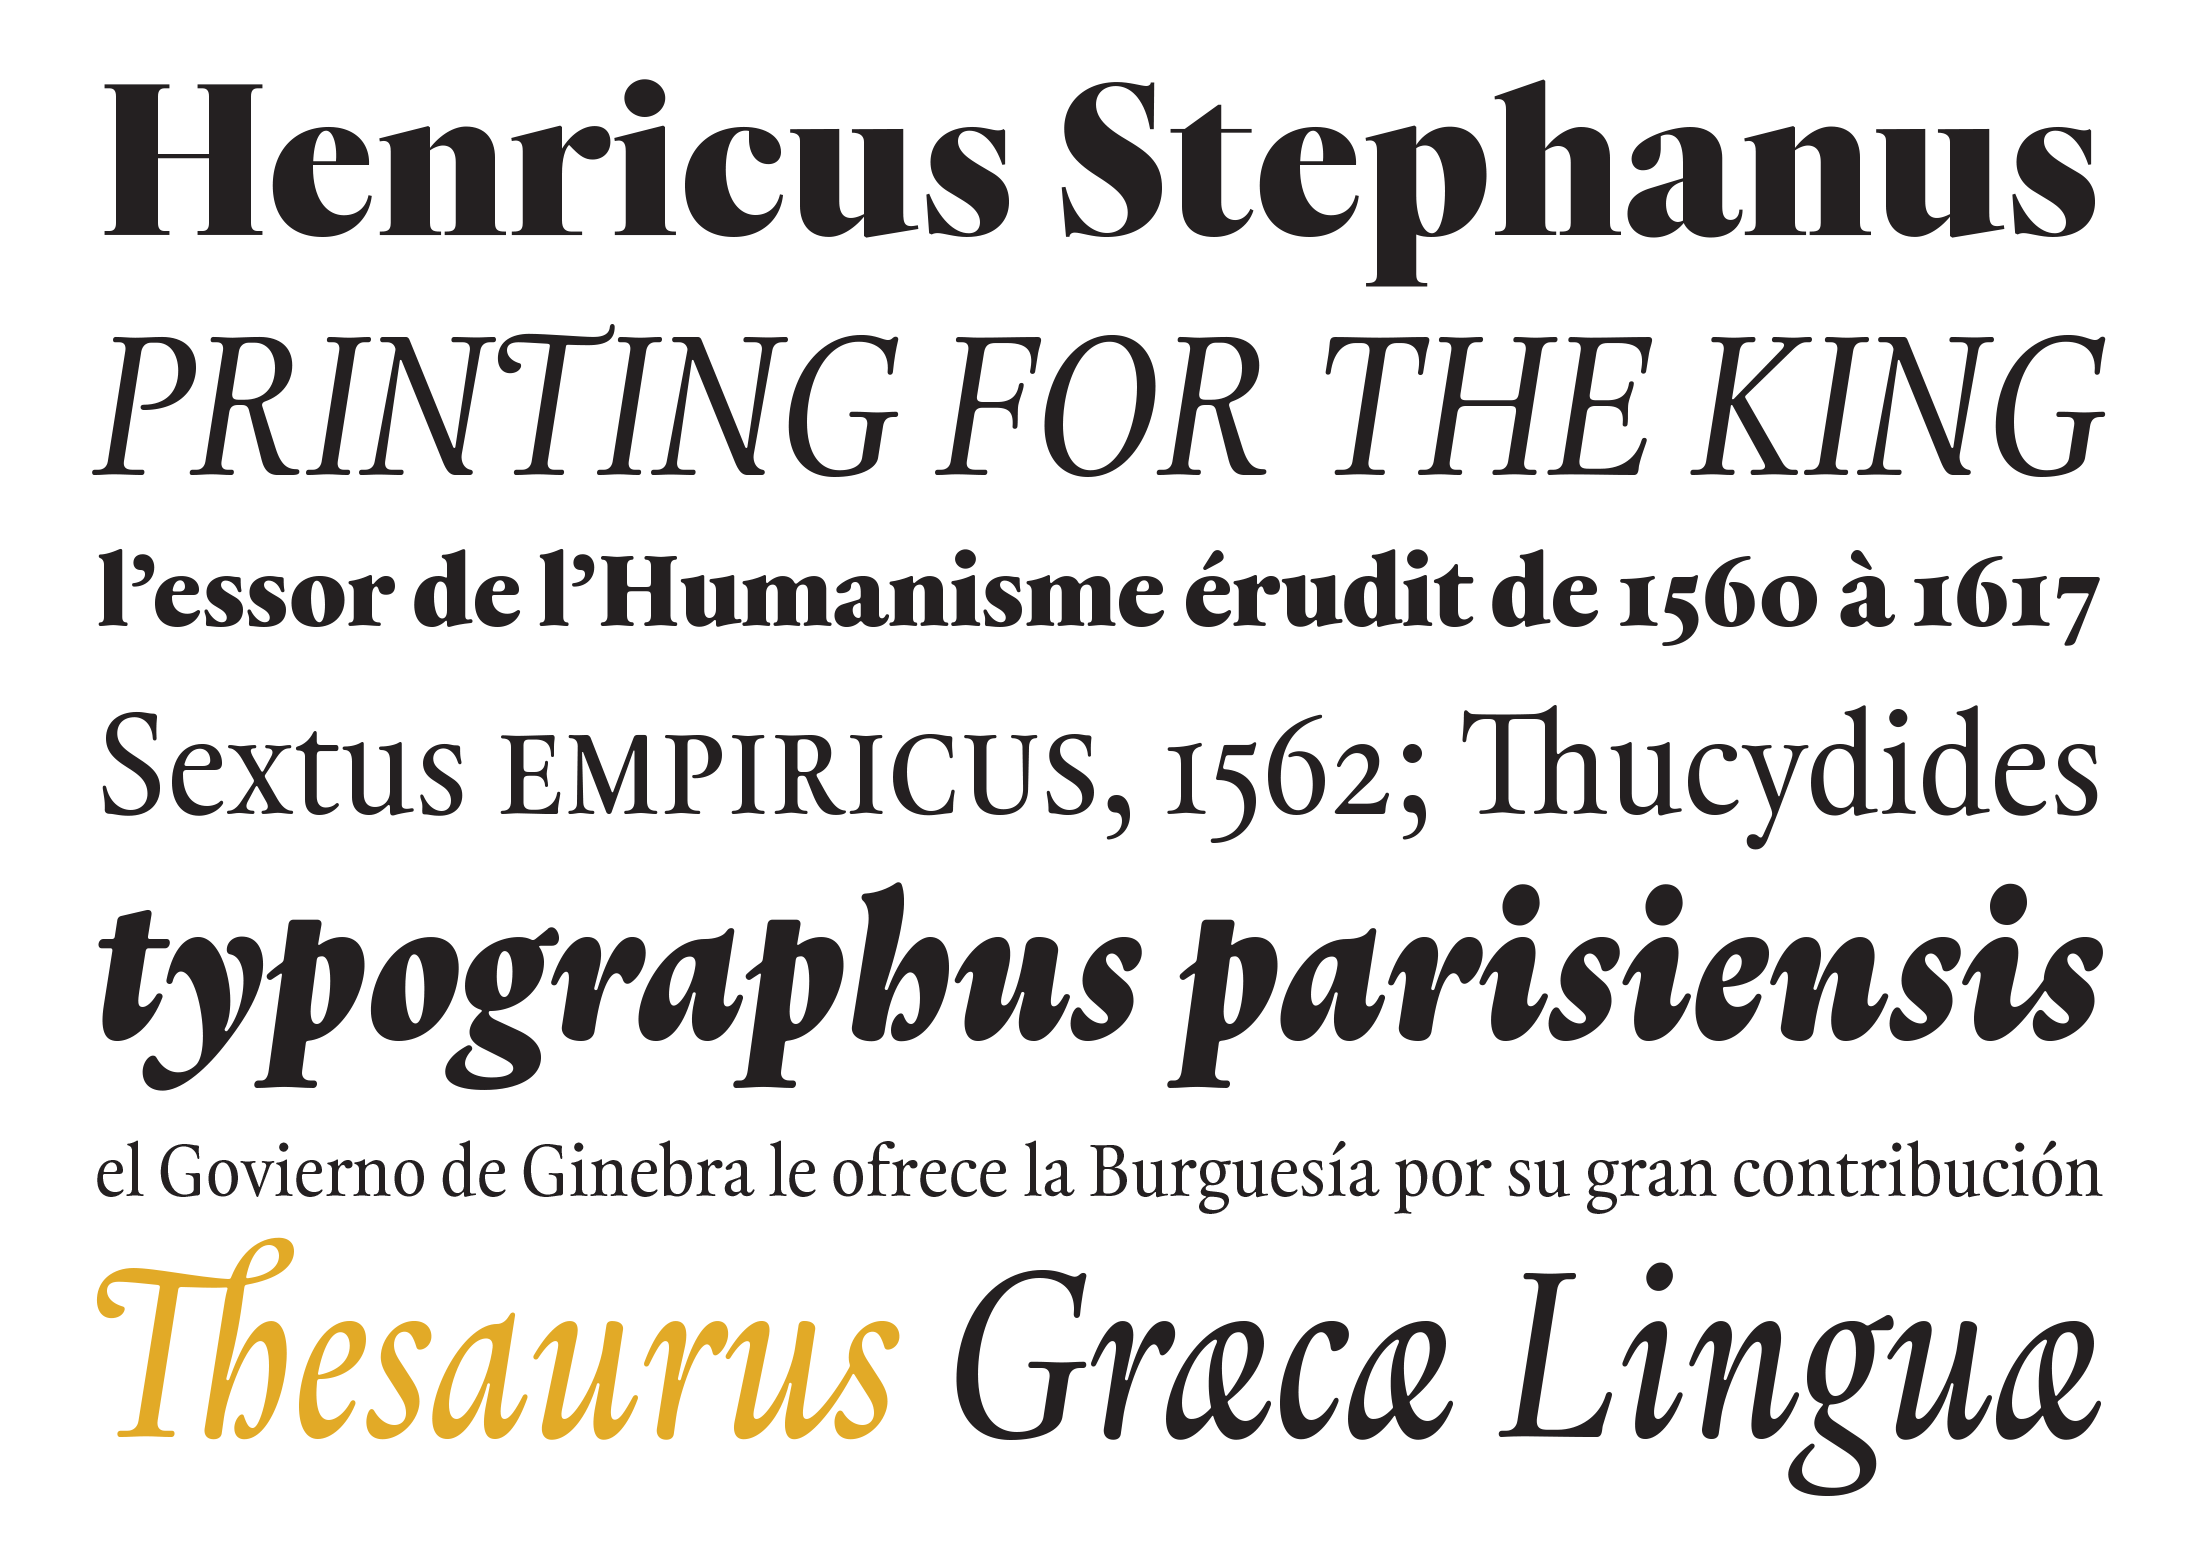 Typotheque: Thesaurus, a typeface with one foot in the past